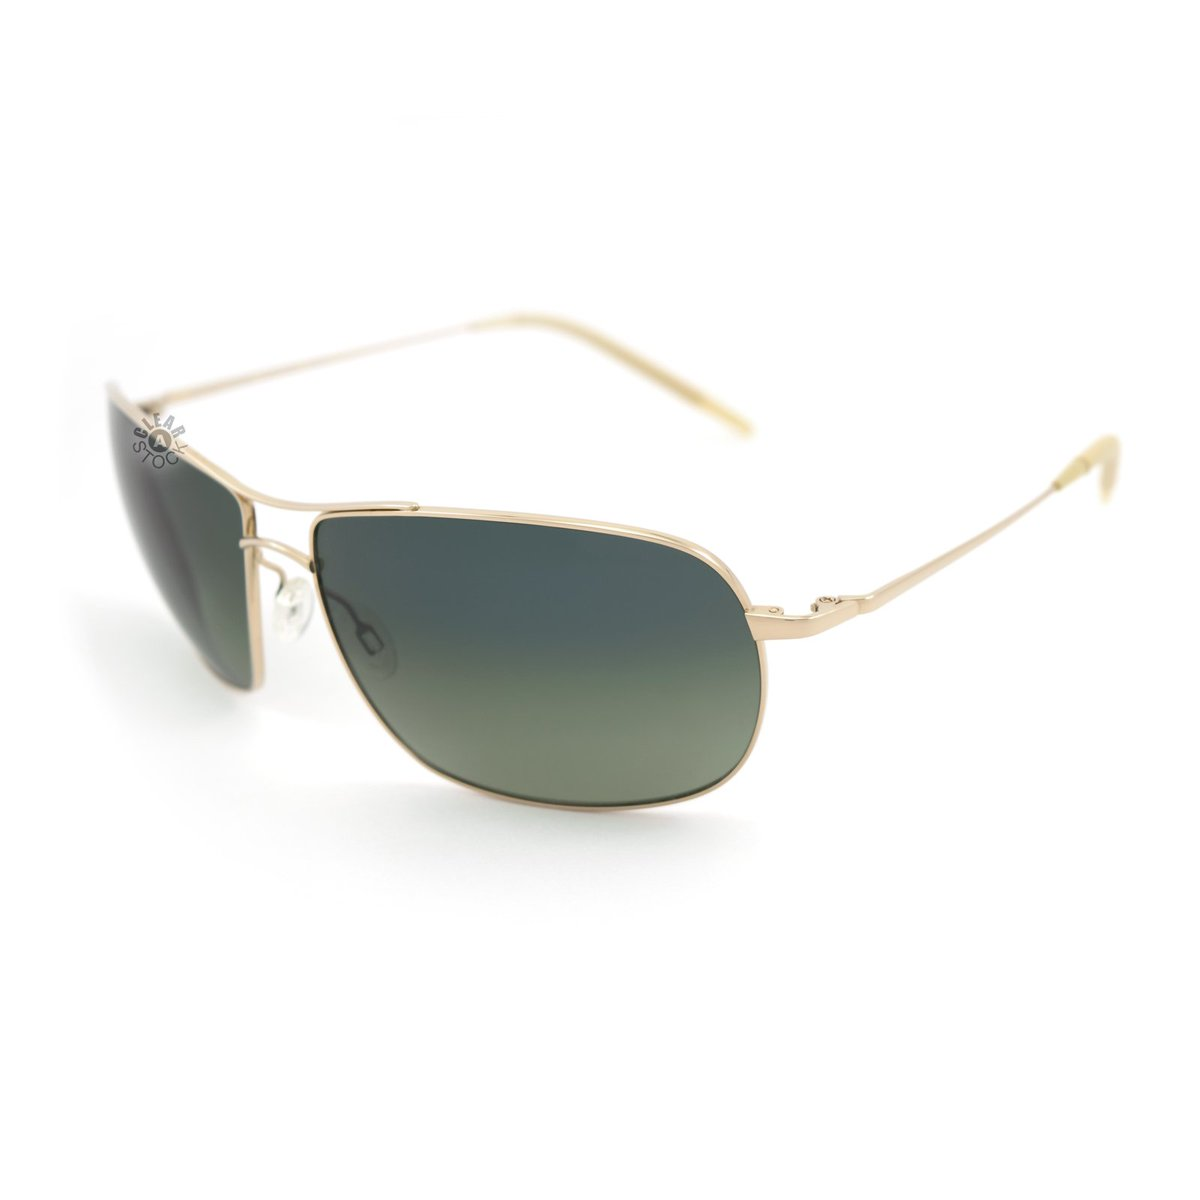 22ef9551720 Oliver Peoples Farrell VFX Photochromic Titanium Polarized Sunglasses  Gold Green  OliverPeoples  sunglasses  shades ...